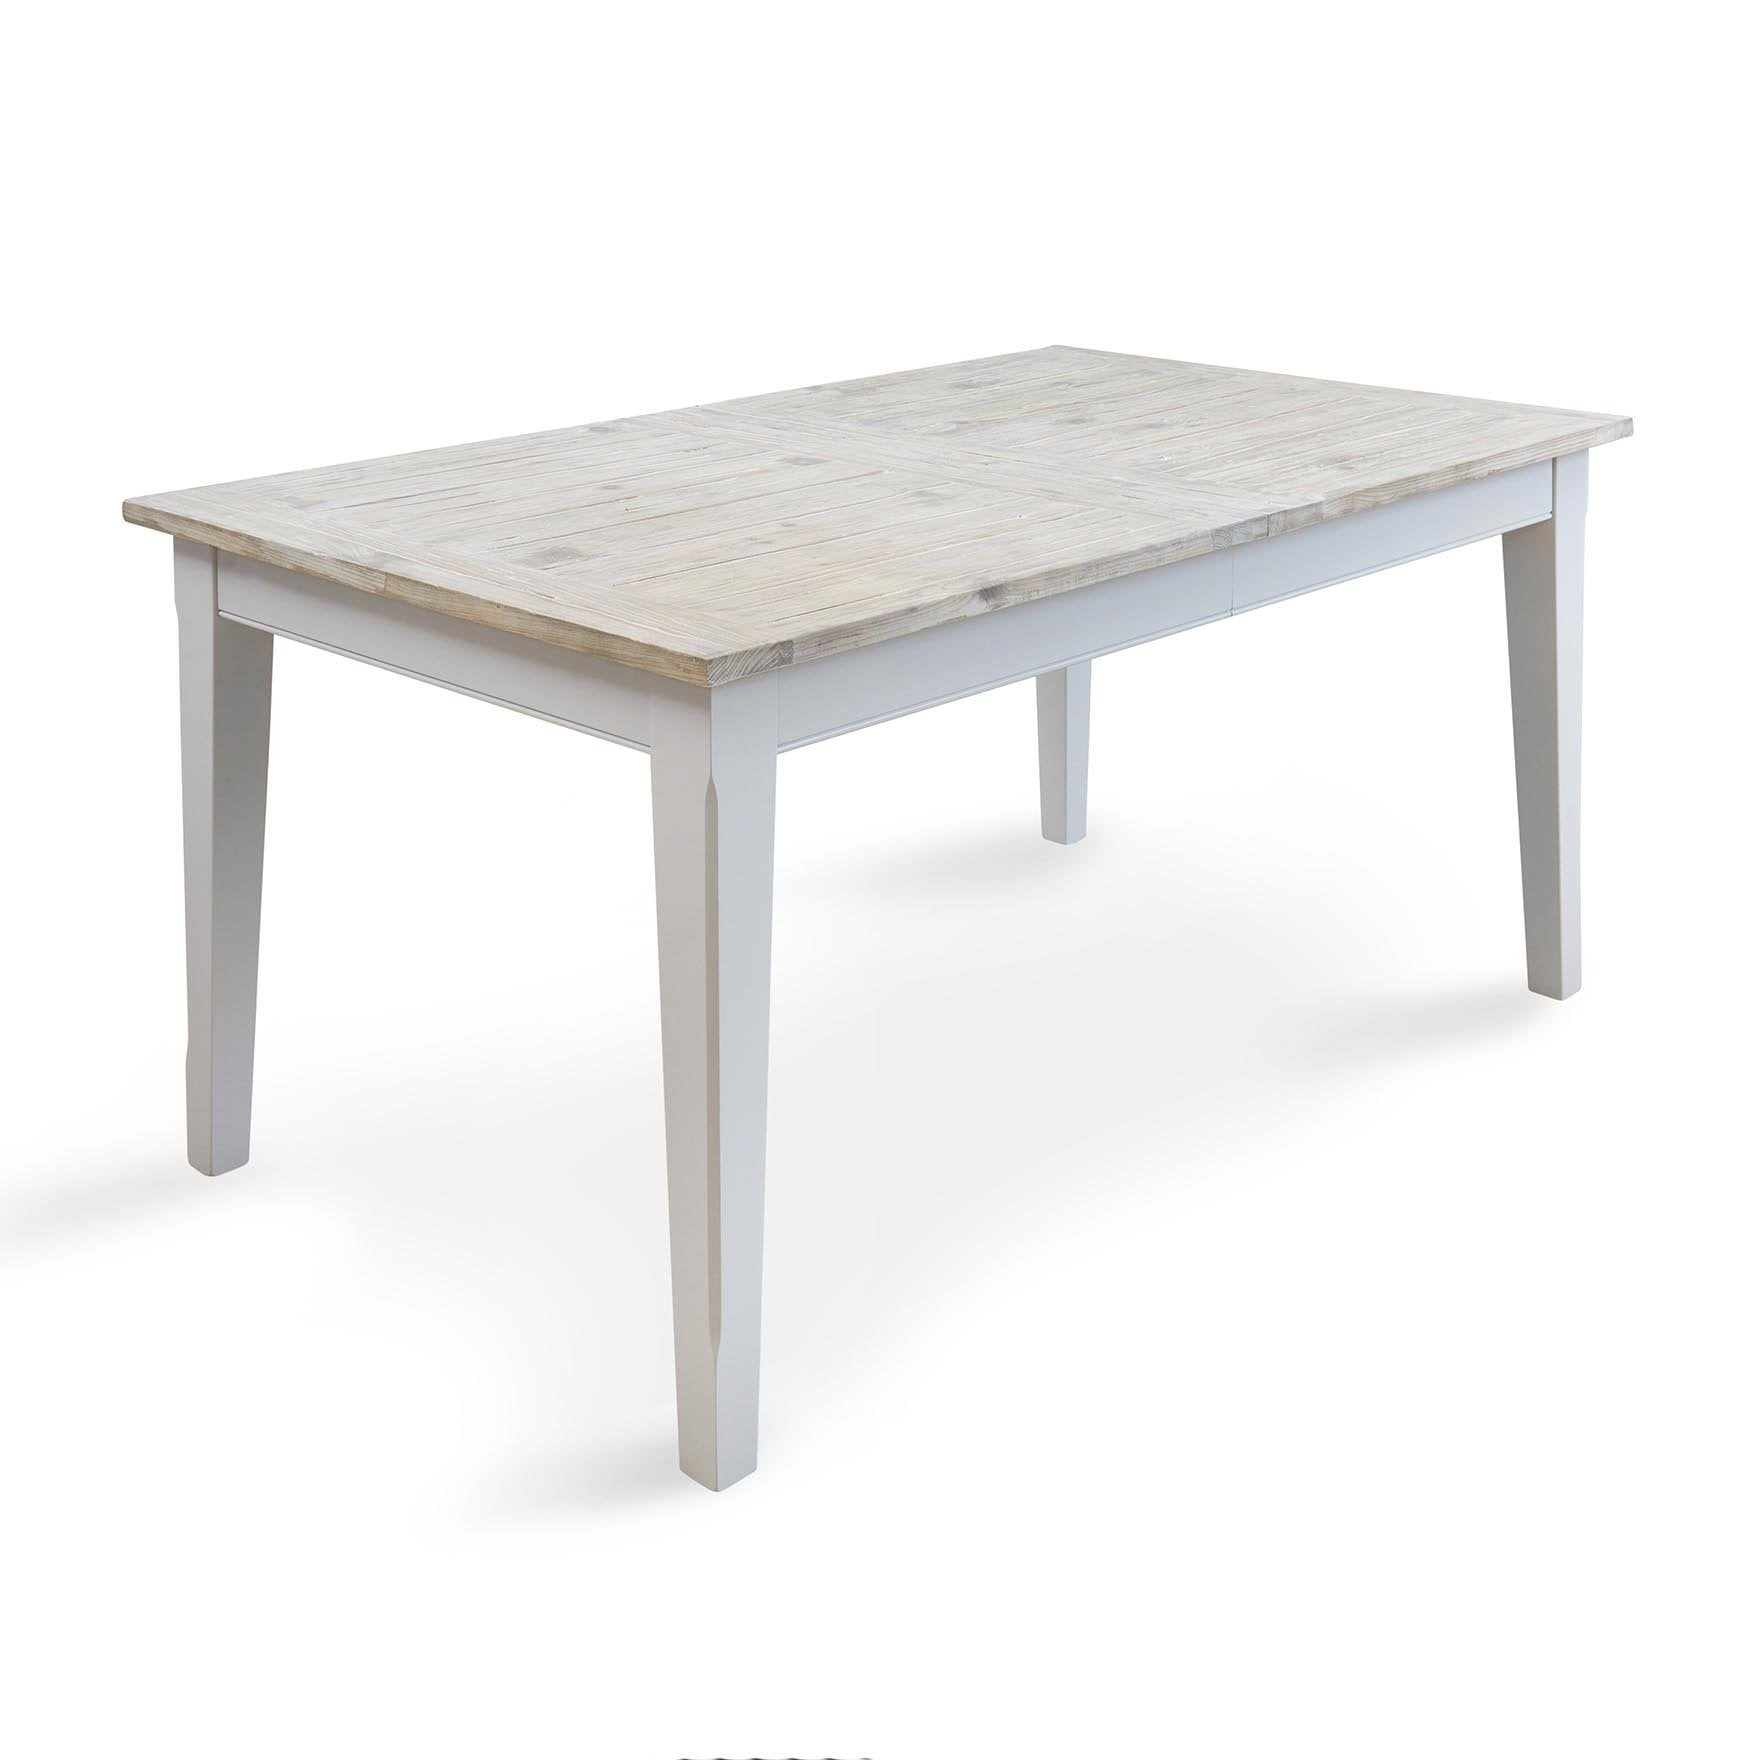 Signature Grey 160-210 cm Extending Dining Table by Roseland Furniture